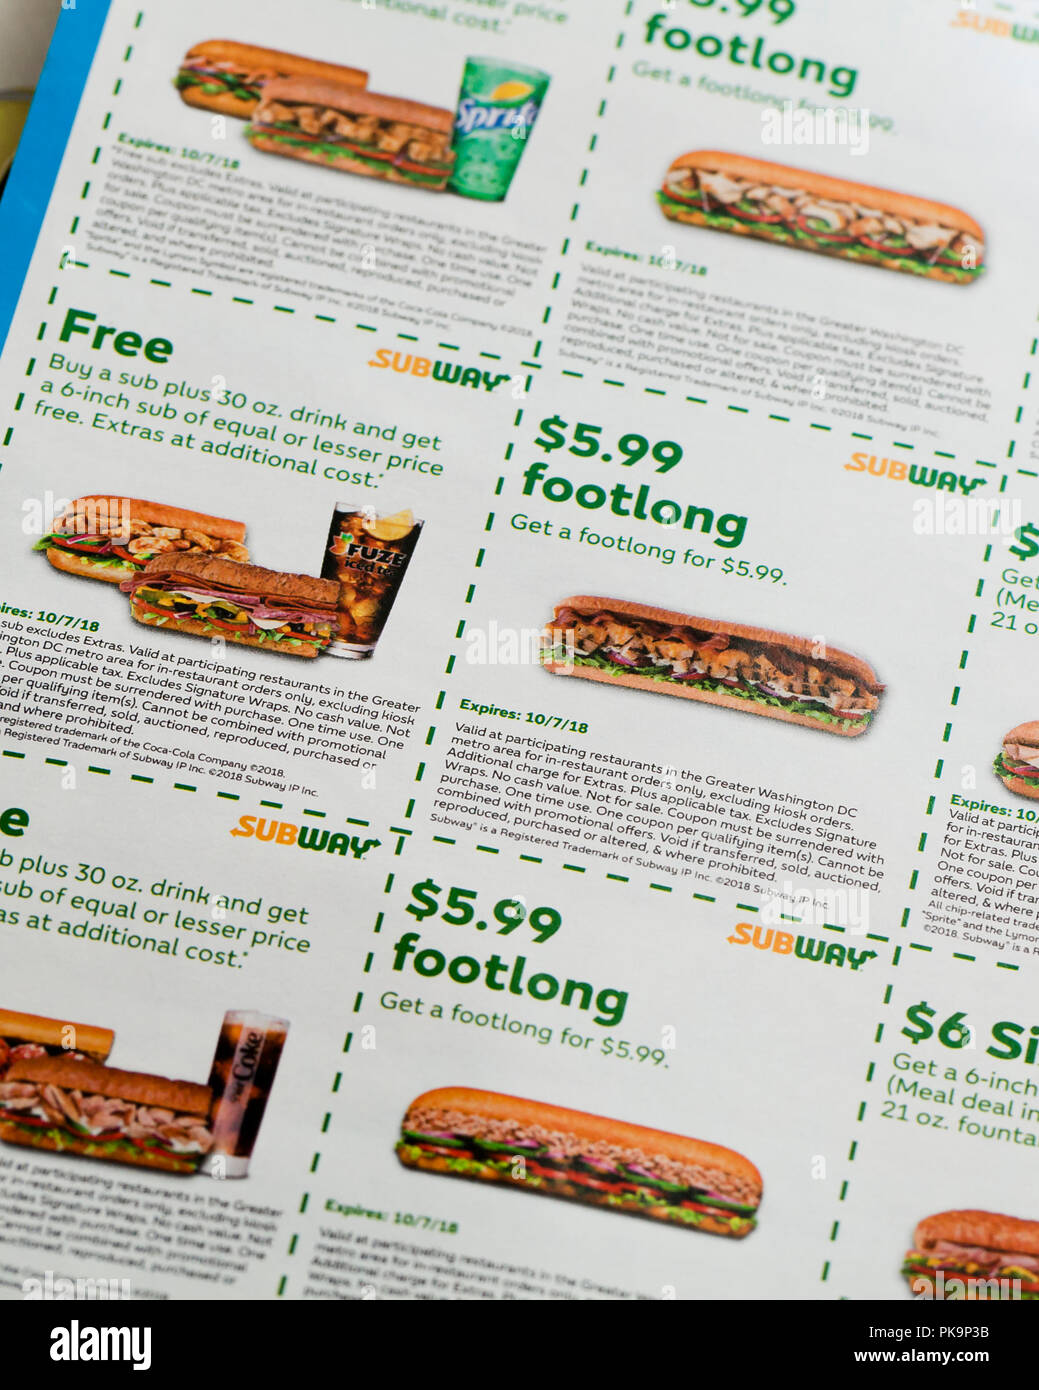 Subway coupons germany